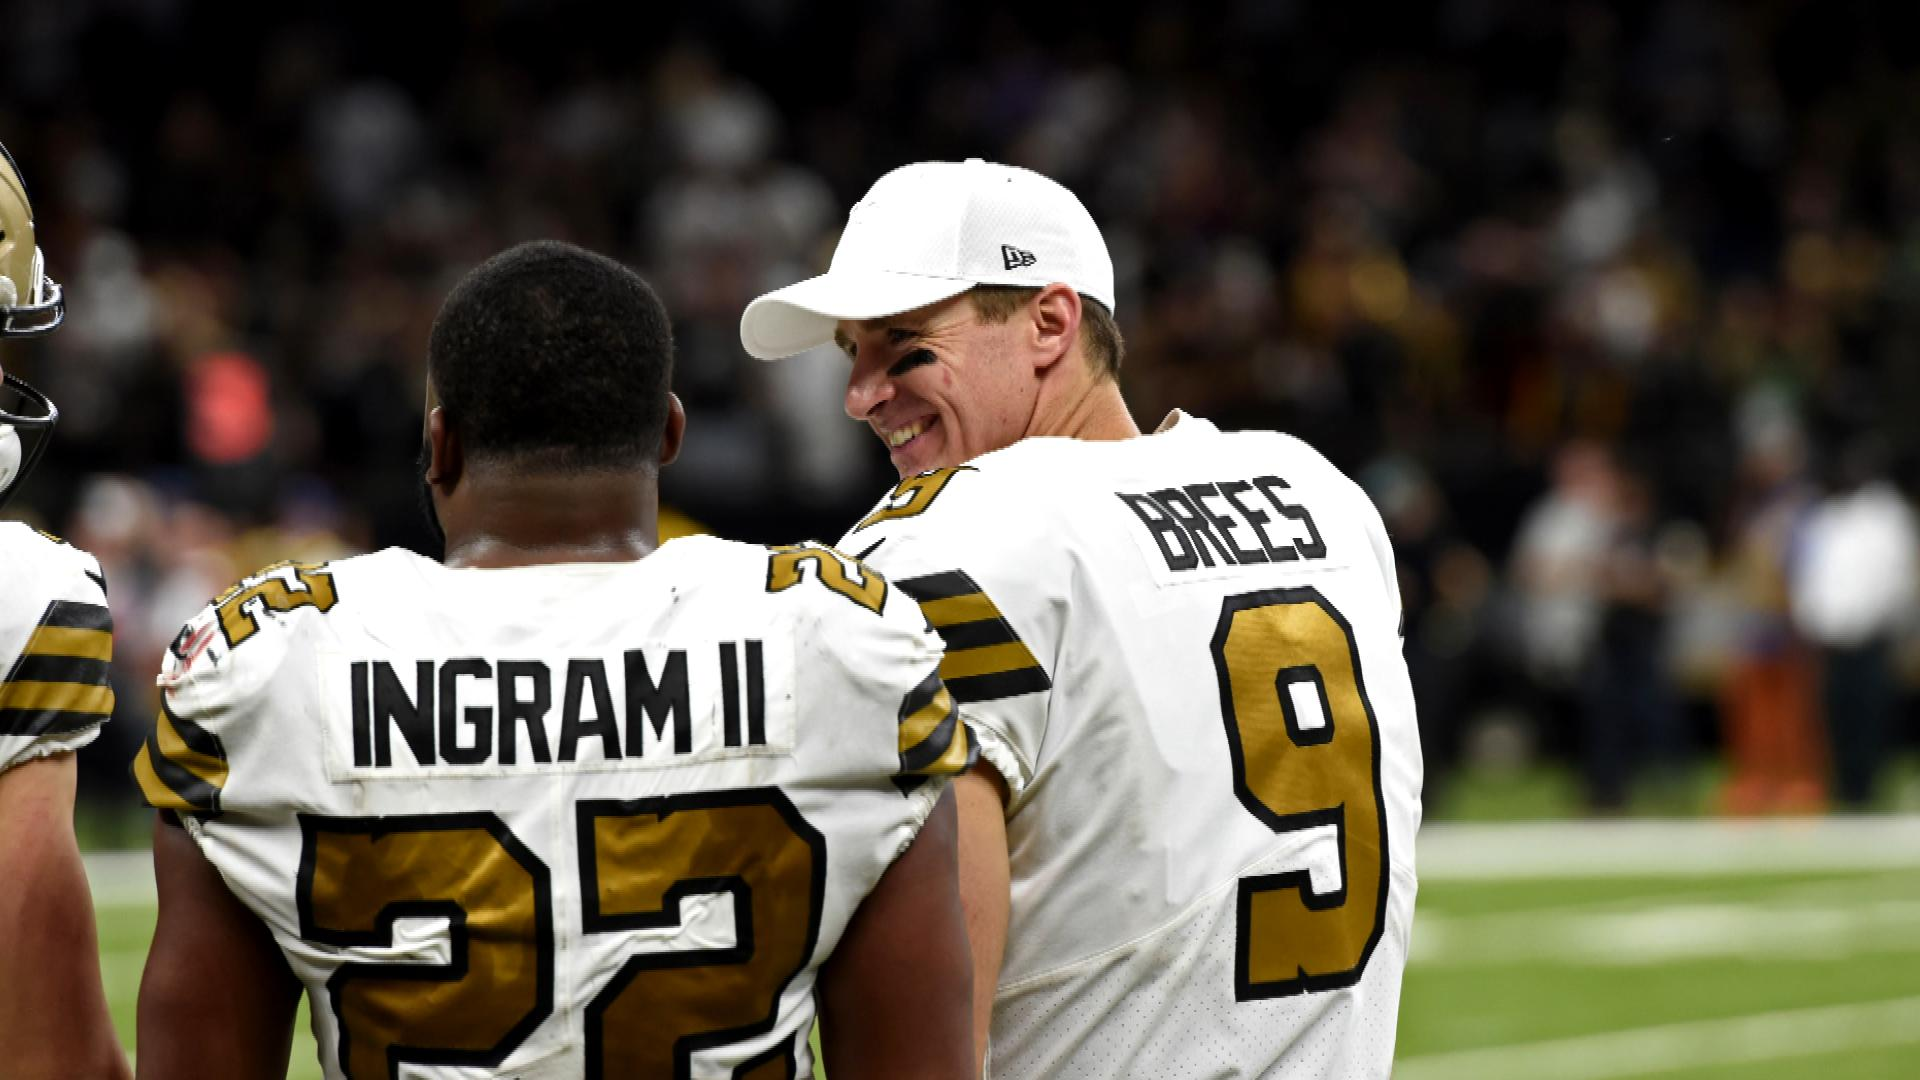 Drew Brees will leave dynamic New Orleans Saints legacy